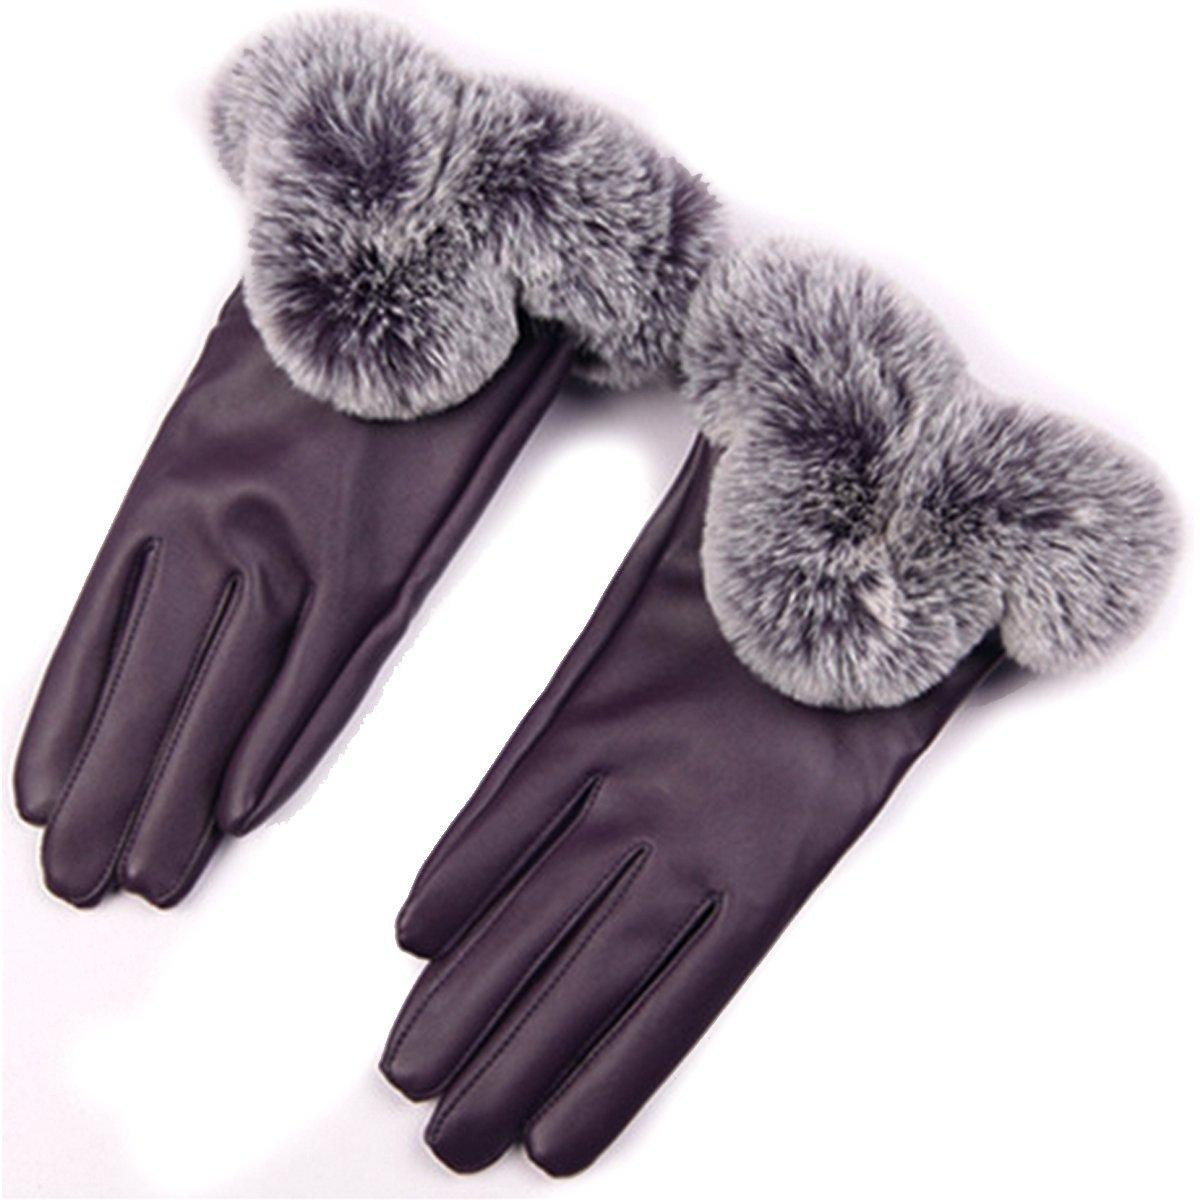 Fake leather driving gloves - Aisa Womens Soft Faux Leather Driving Gloves Touch Screen Windproof Gloves Winter Warm Wear Color Purple